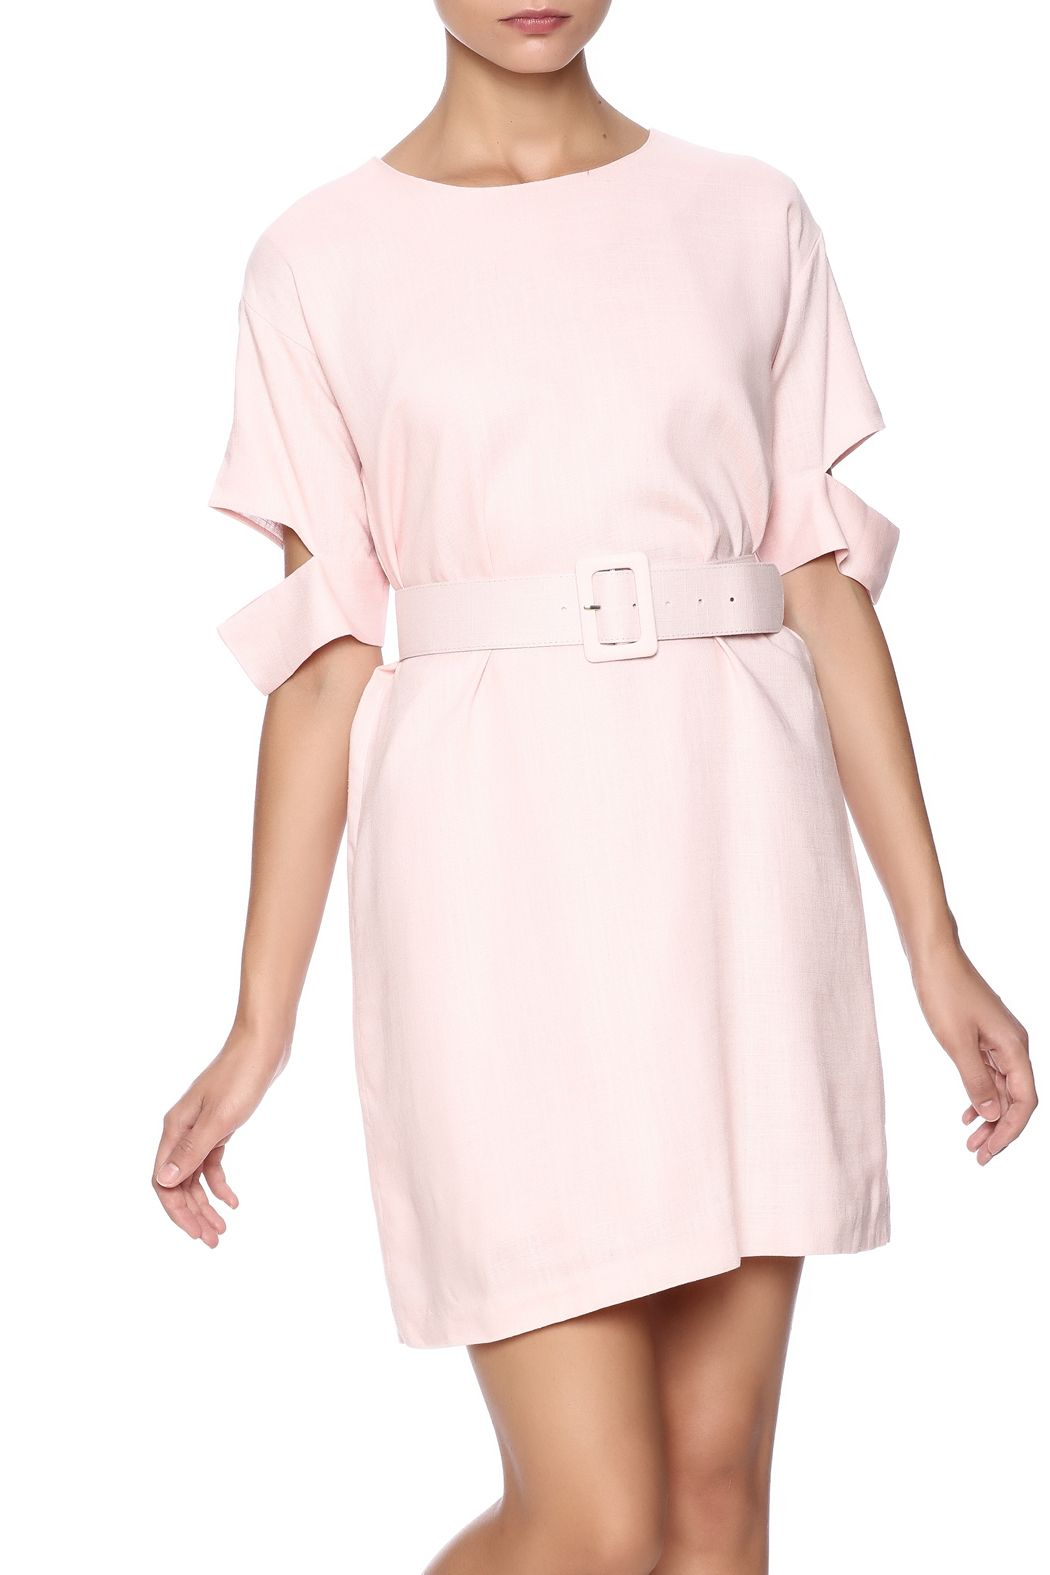 Short sleeve dress with cut out detail on sleeves and belt hidden